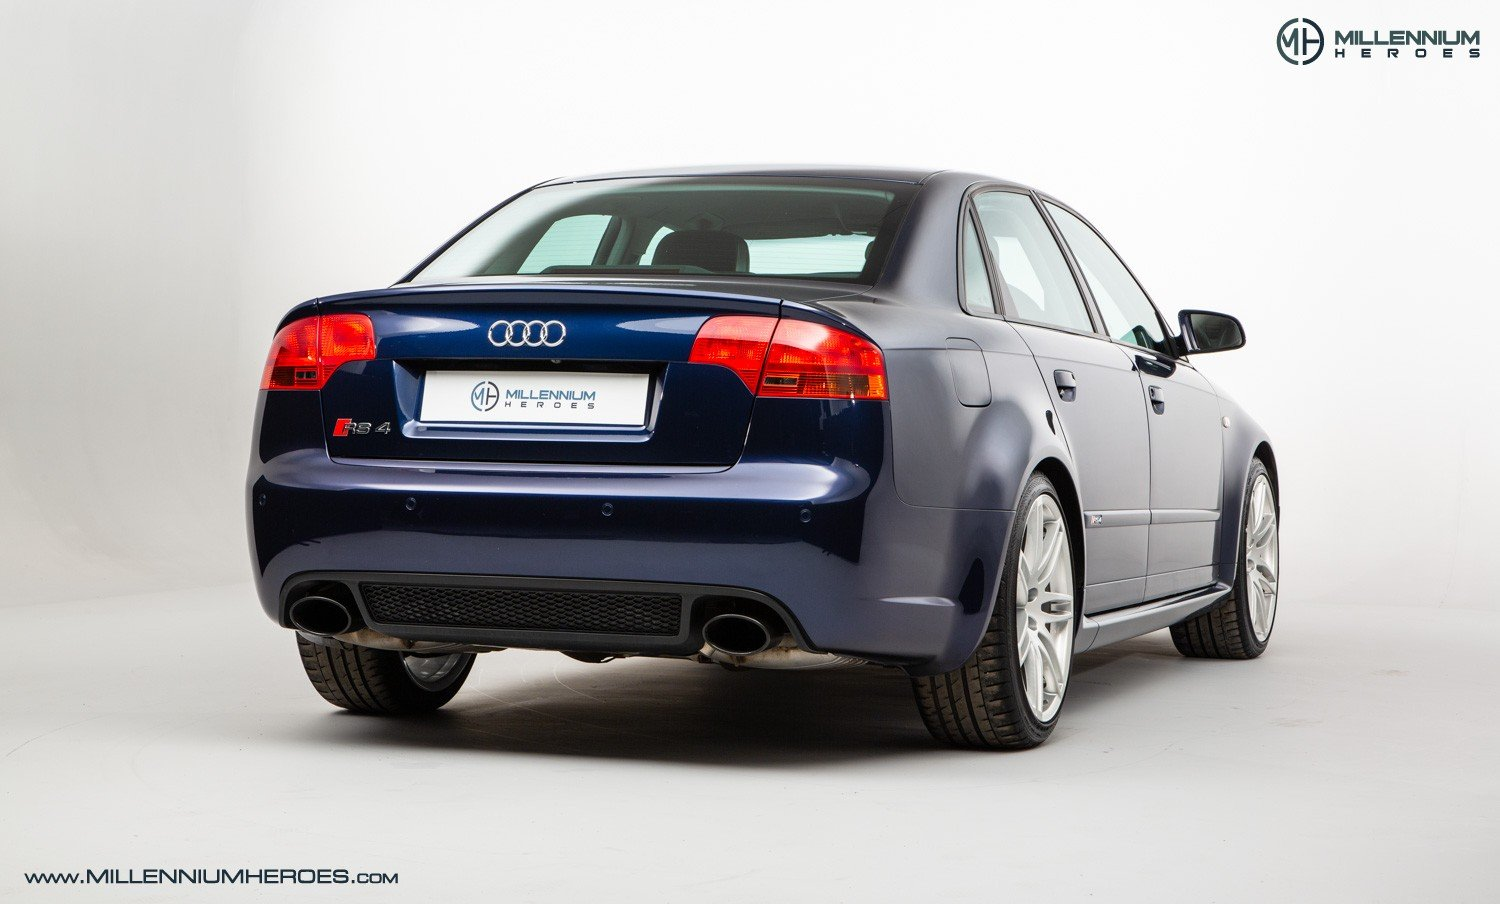 2007 AUDI B7 RS4 SALOON // EXCELLENT HISTORY // MUGELLO BLUE For Sale (picture 3 of 6)